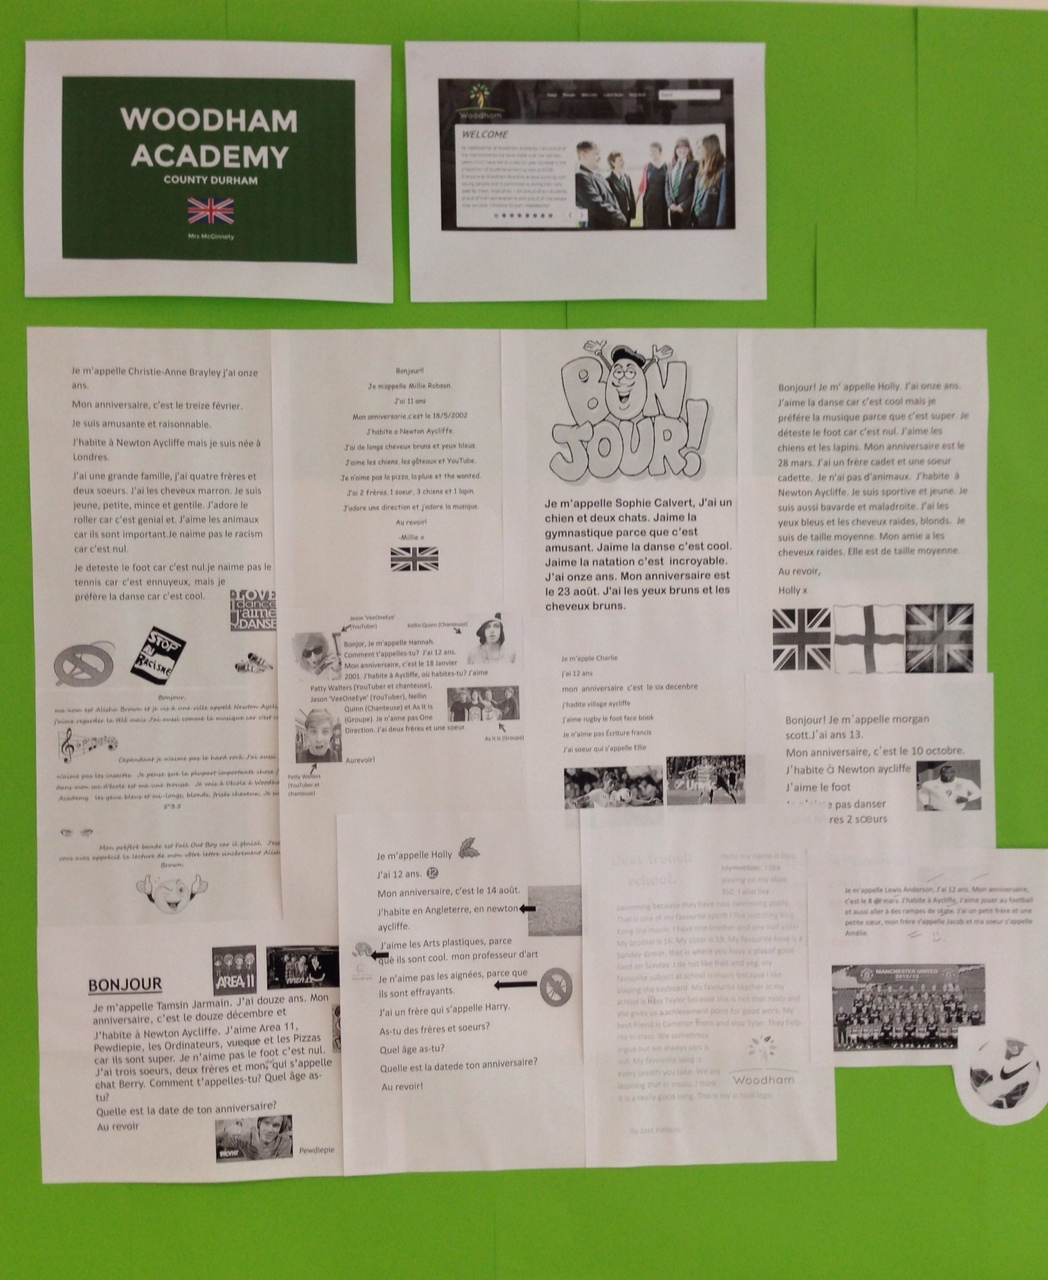 woodham academy's letters